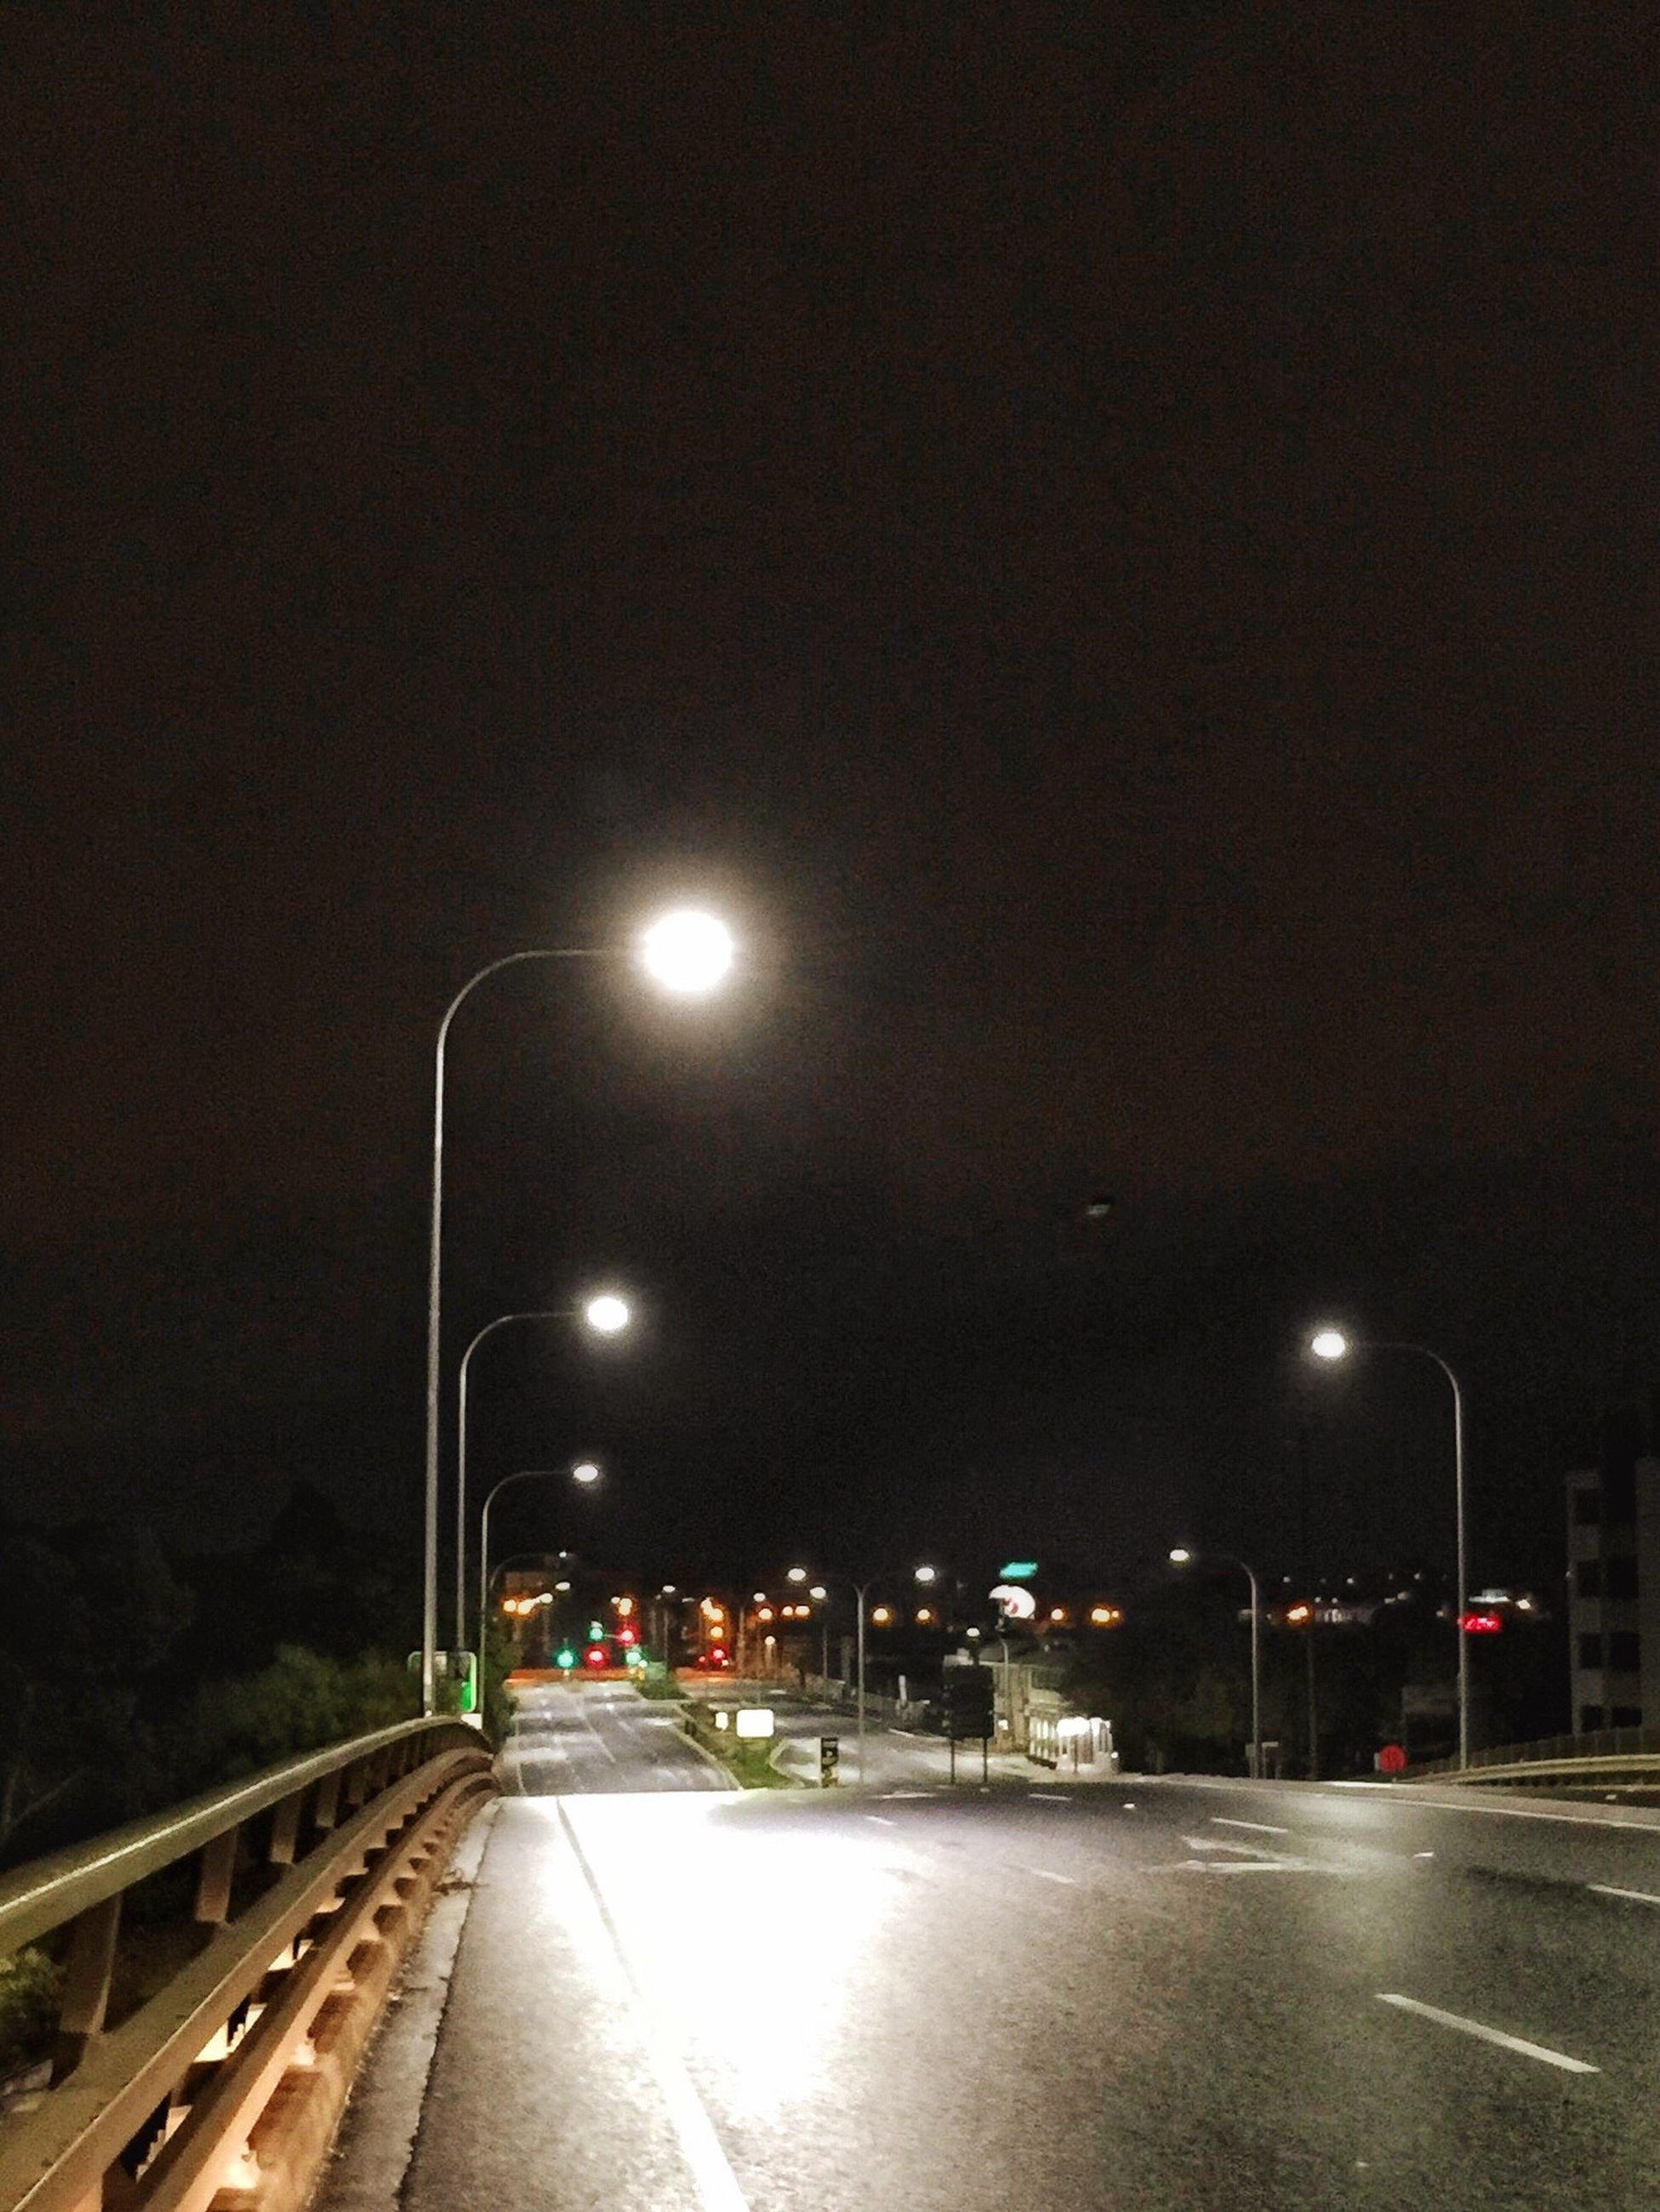 night, illuminated, street light, road, the way forward, transportation, street, lighting equipment, road marking, sky, diminishing perspective, architecture, built structure, building exterior, vanishing point, city, clear sky, car, outdoors, empty road